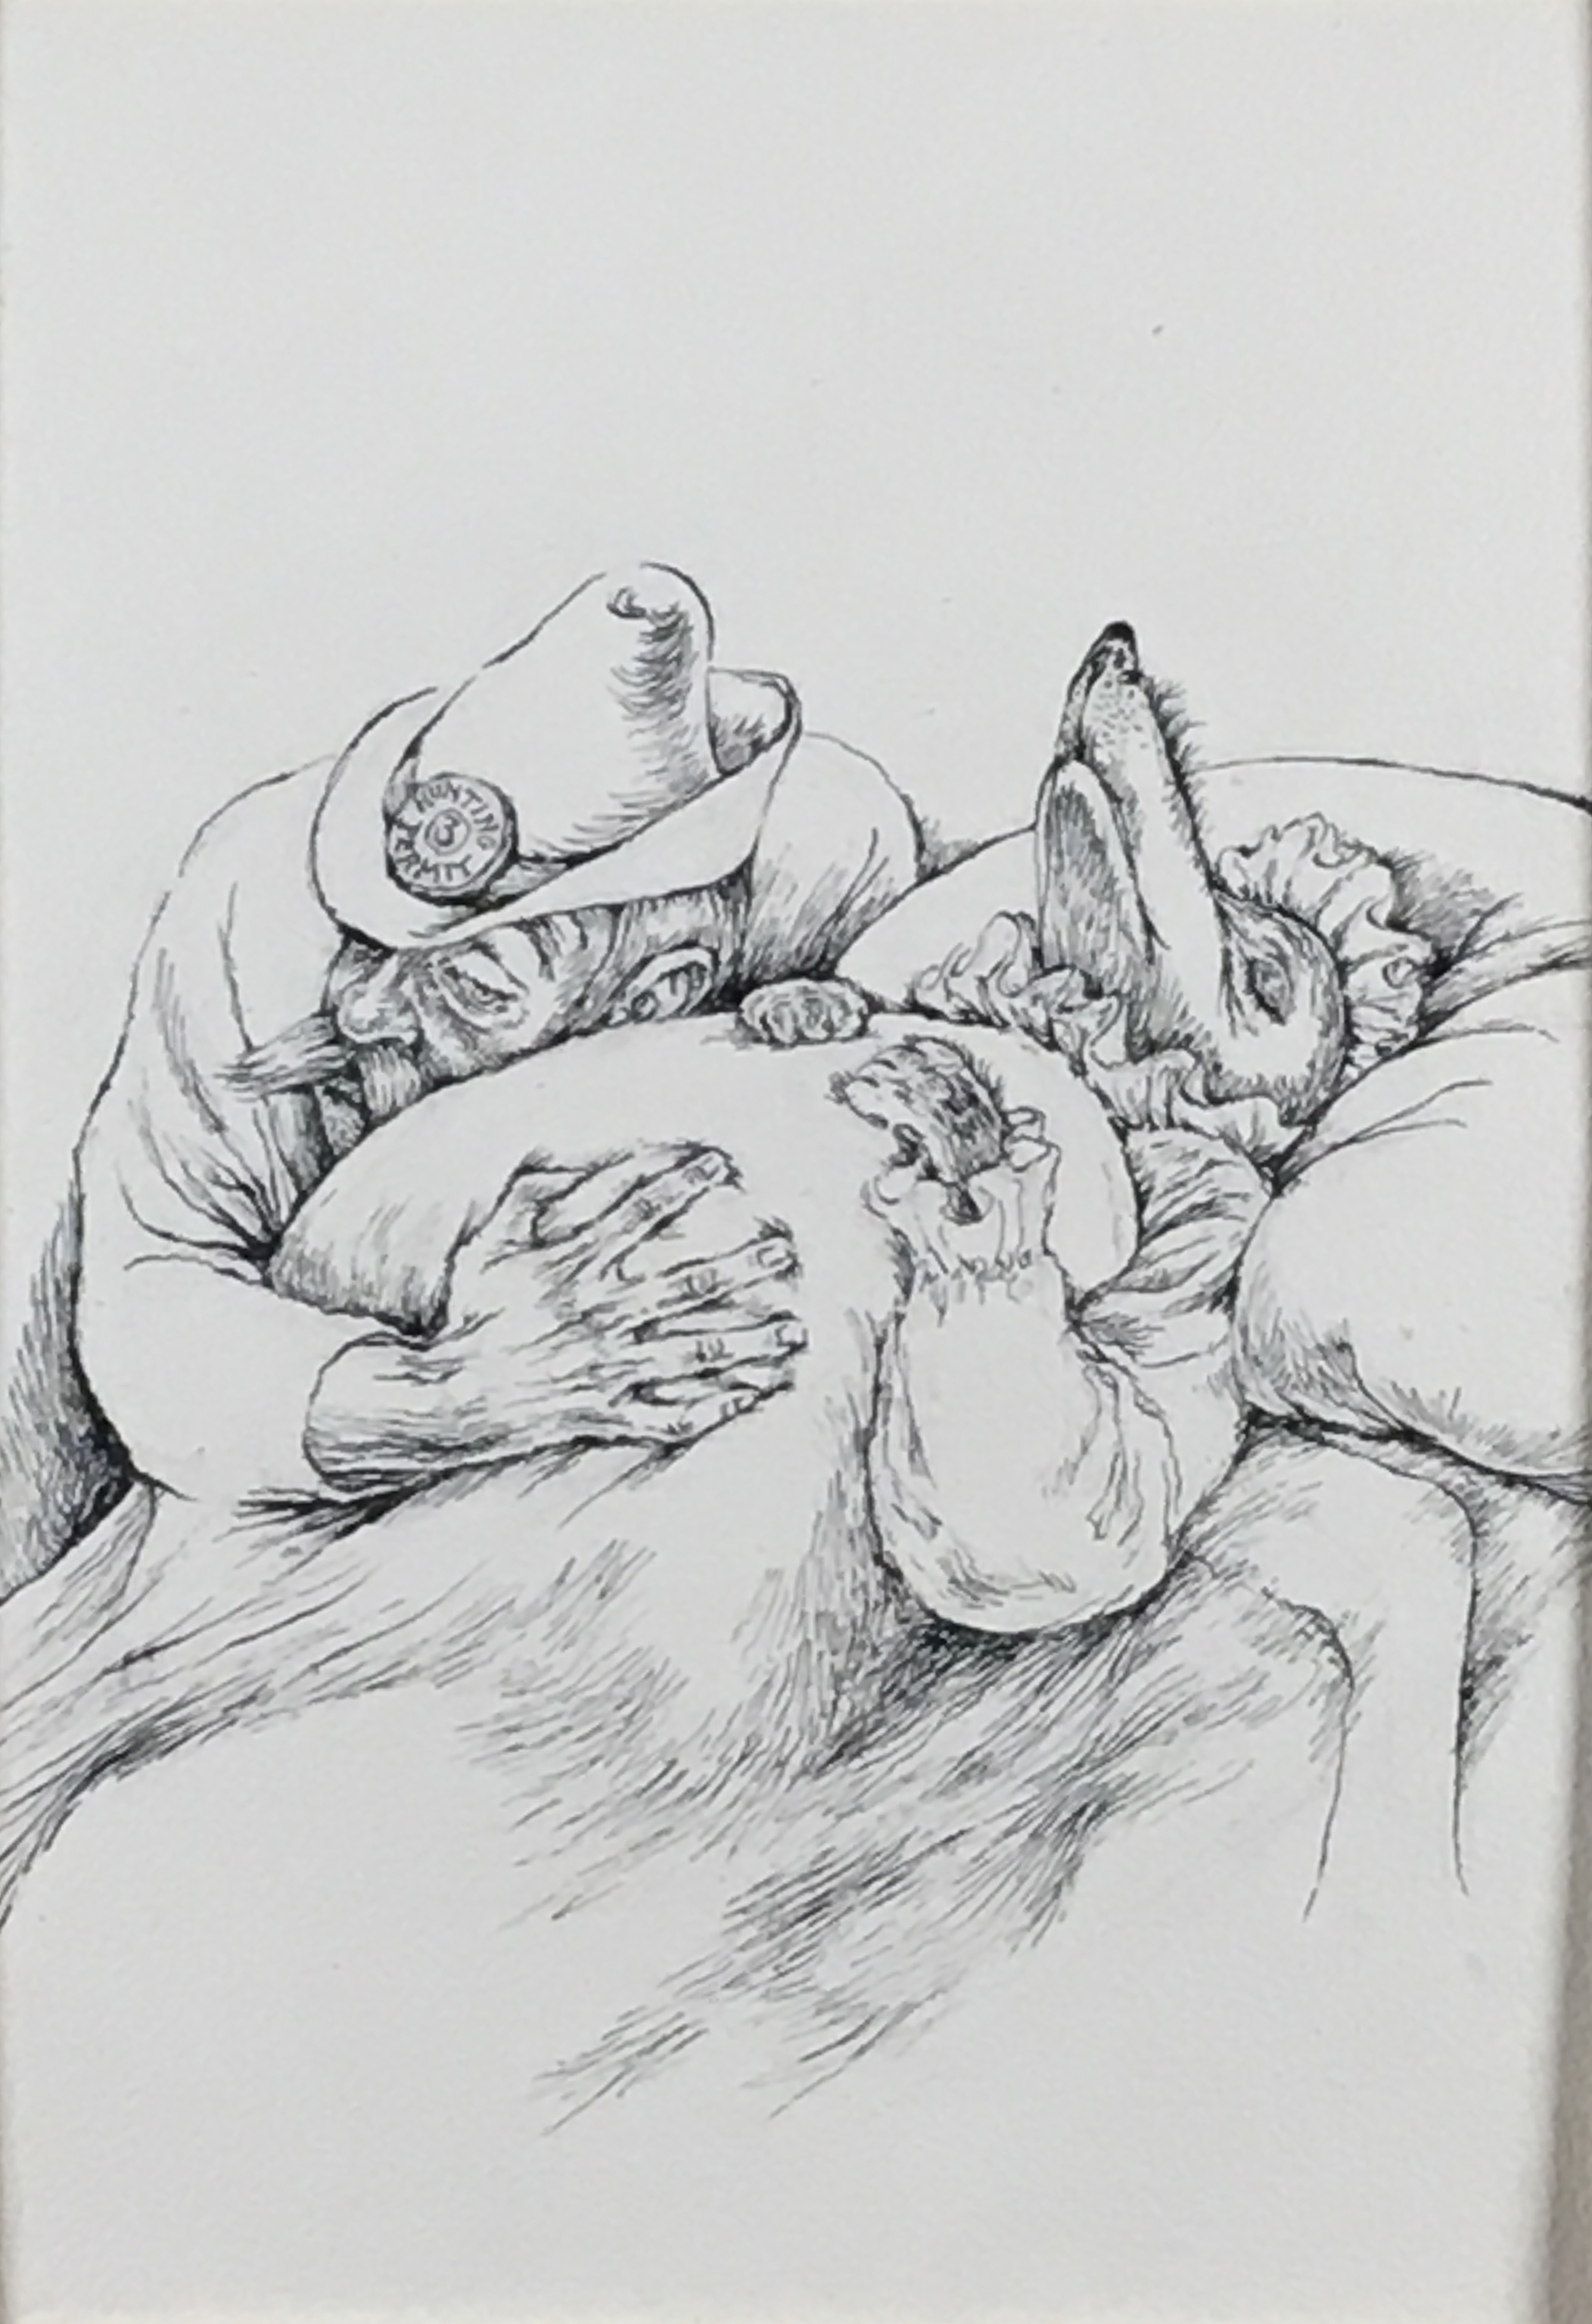 Red Riding Hood , 1970-71 ink on paper, 16 x 11 inches